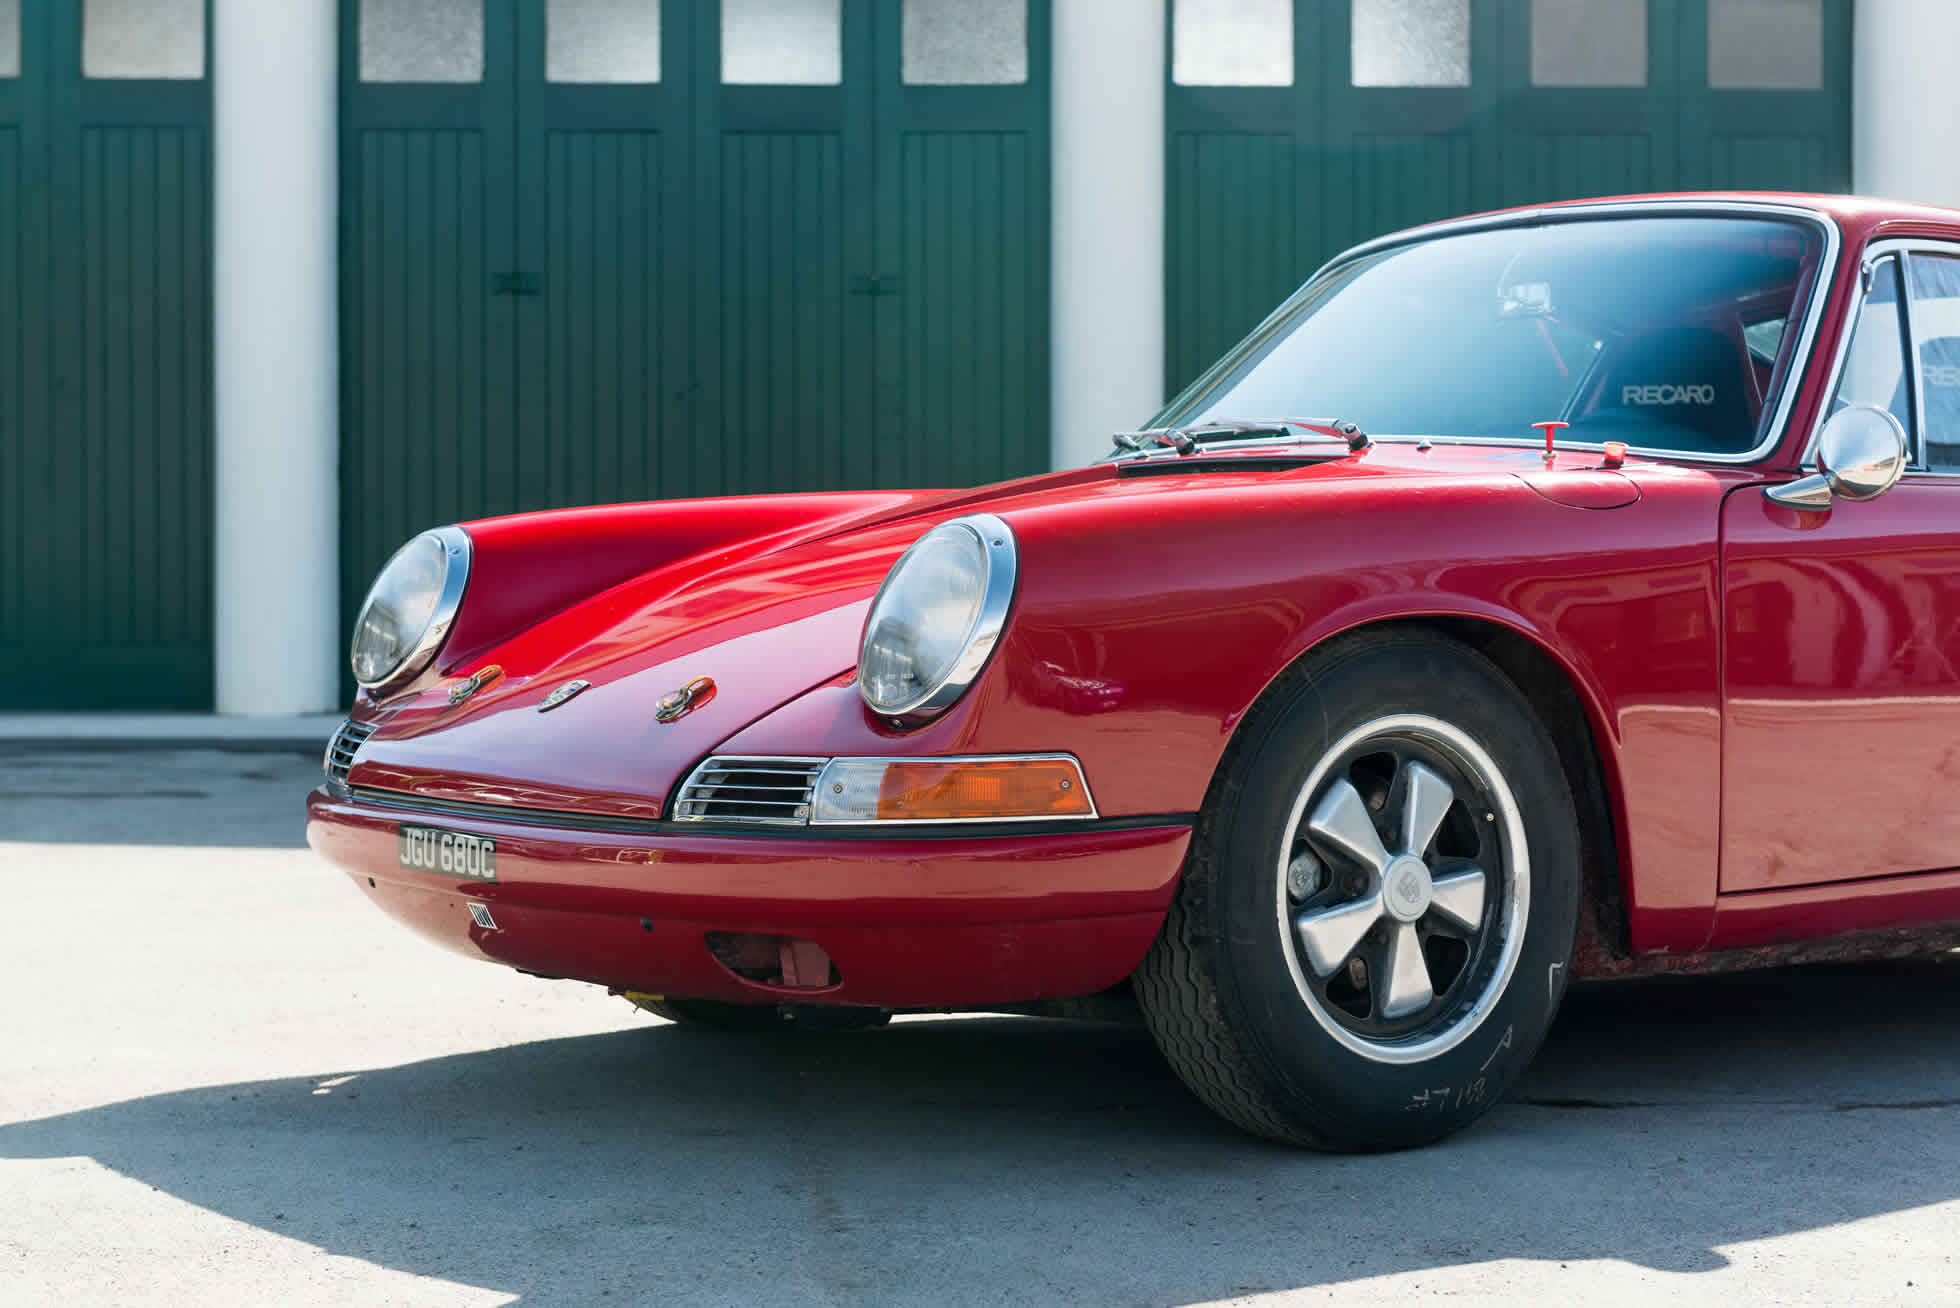 For Sale 1965 Porsche 911 front view